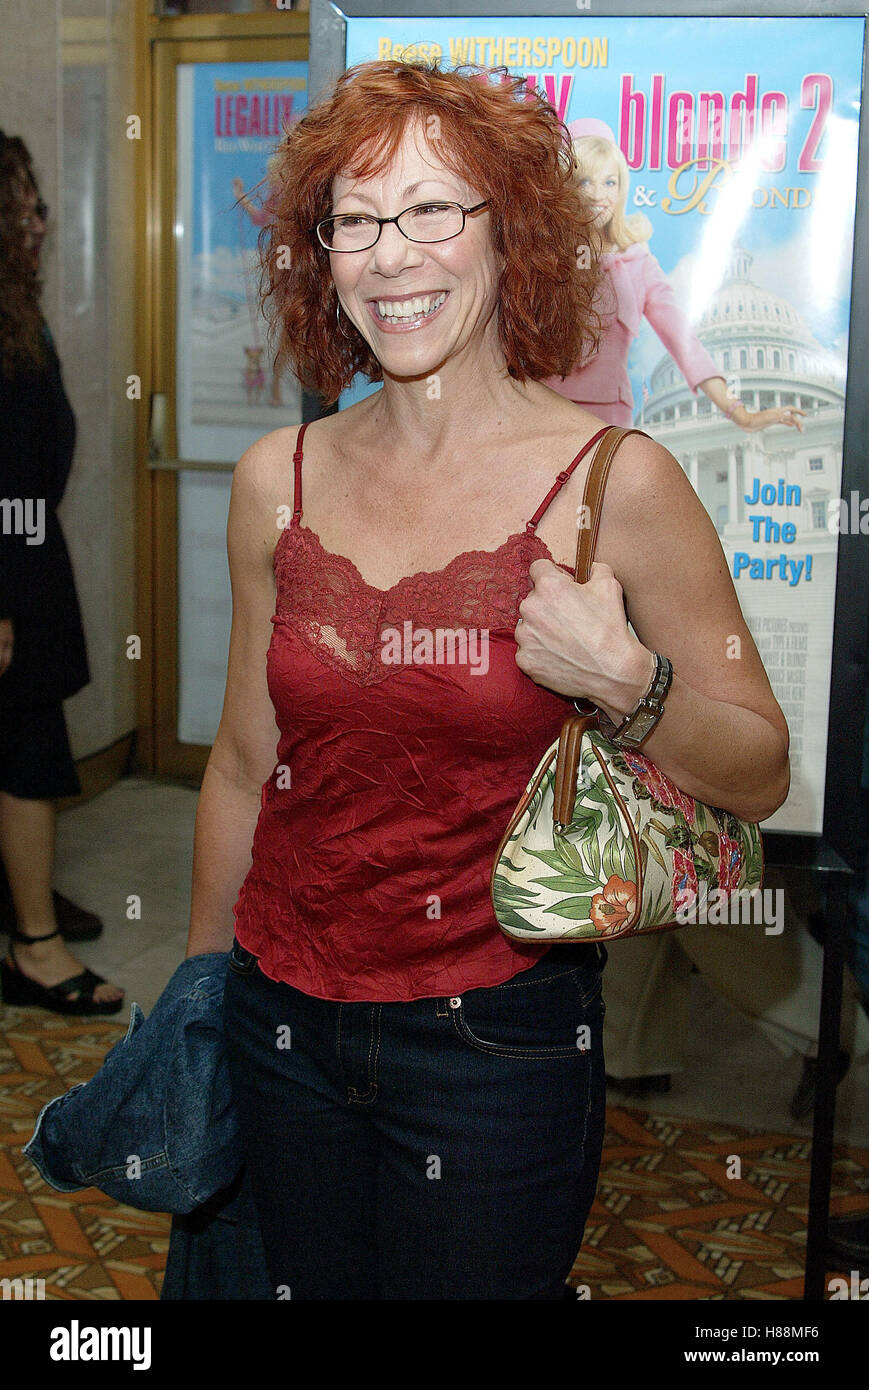 Communication on this topic: Mary Wiseman (actress), mindy-sterling/